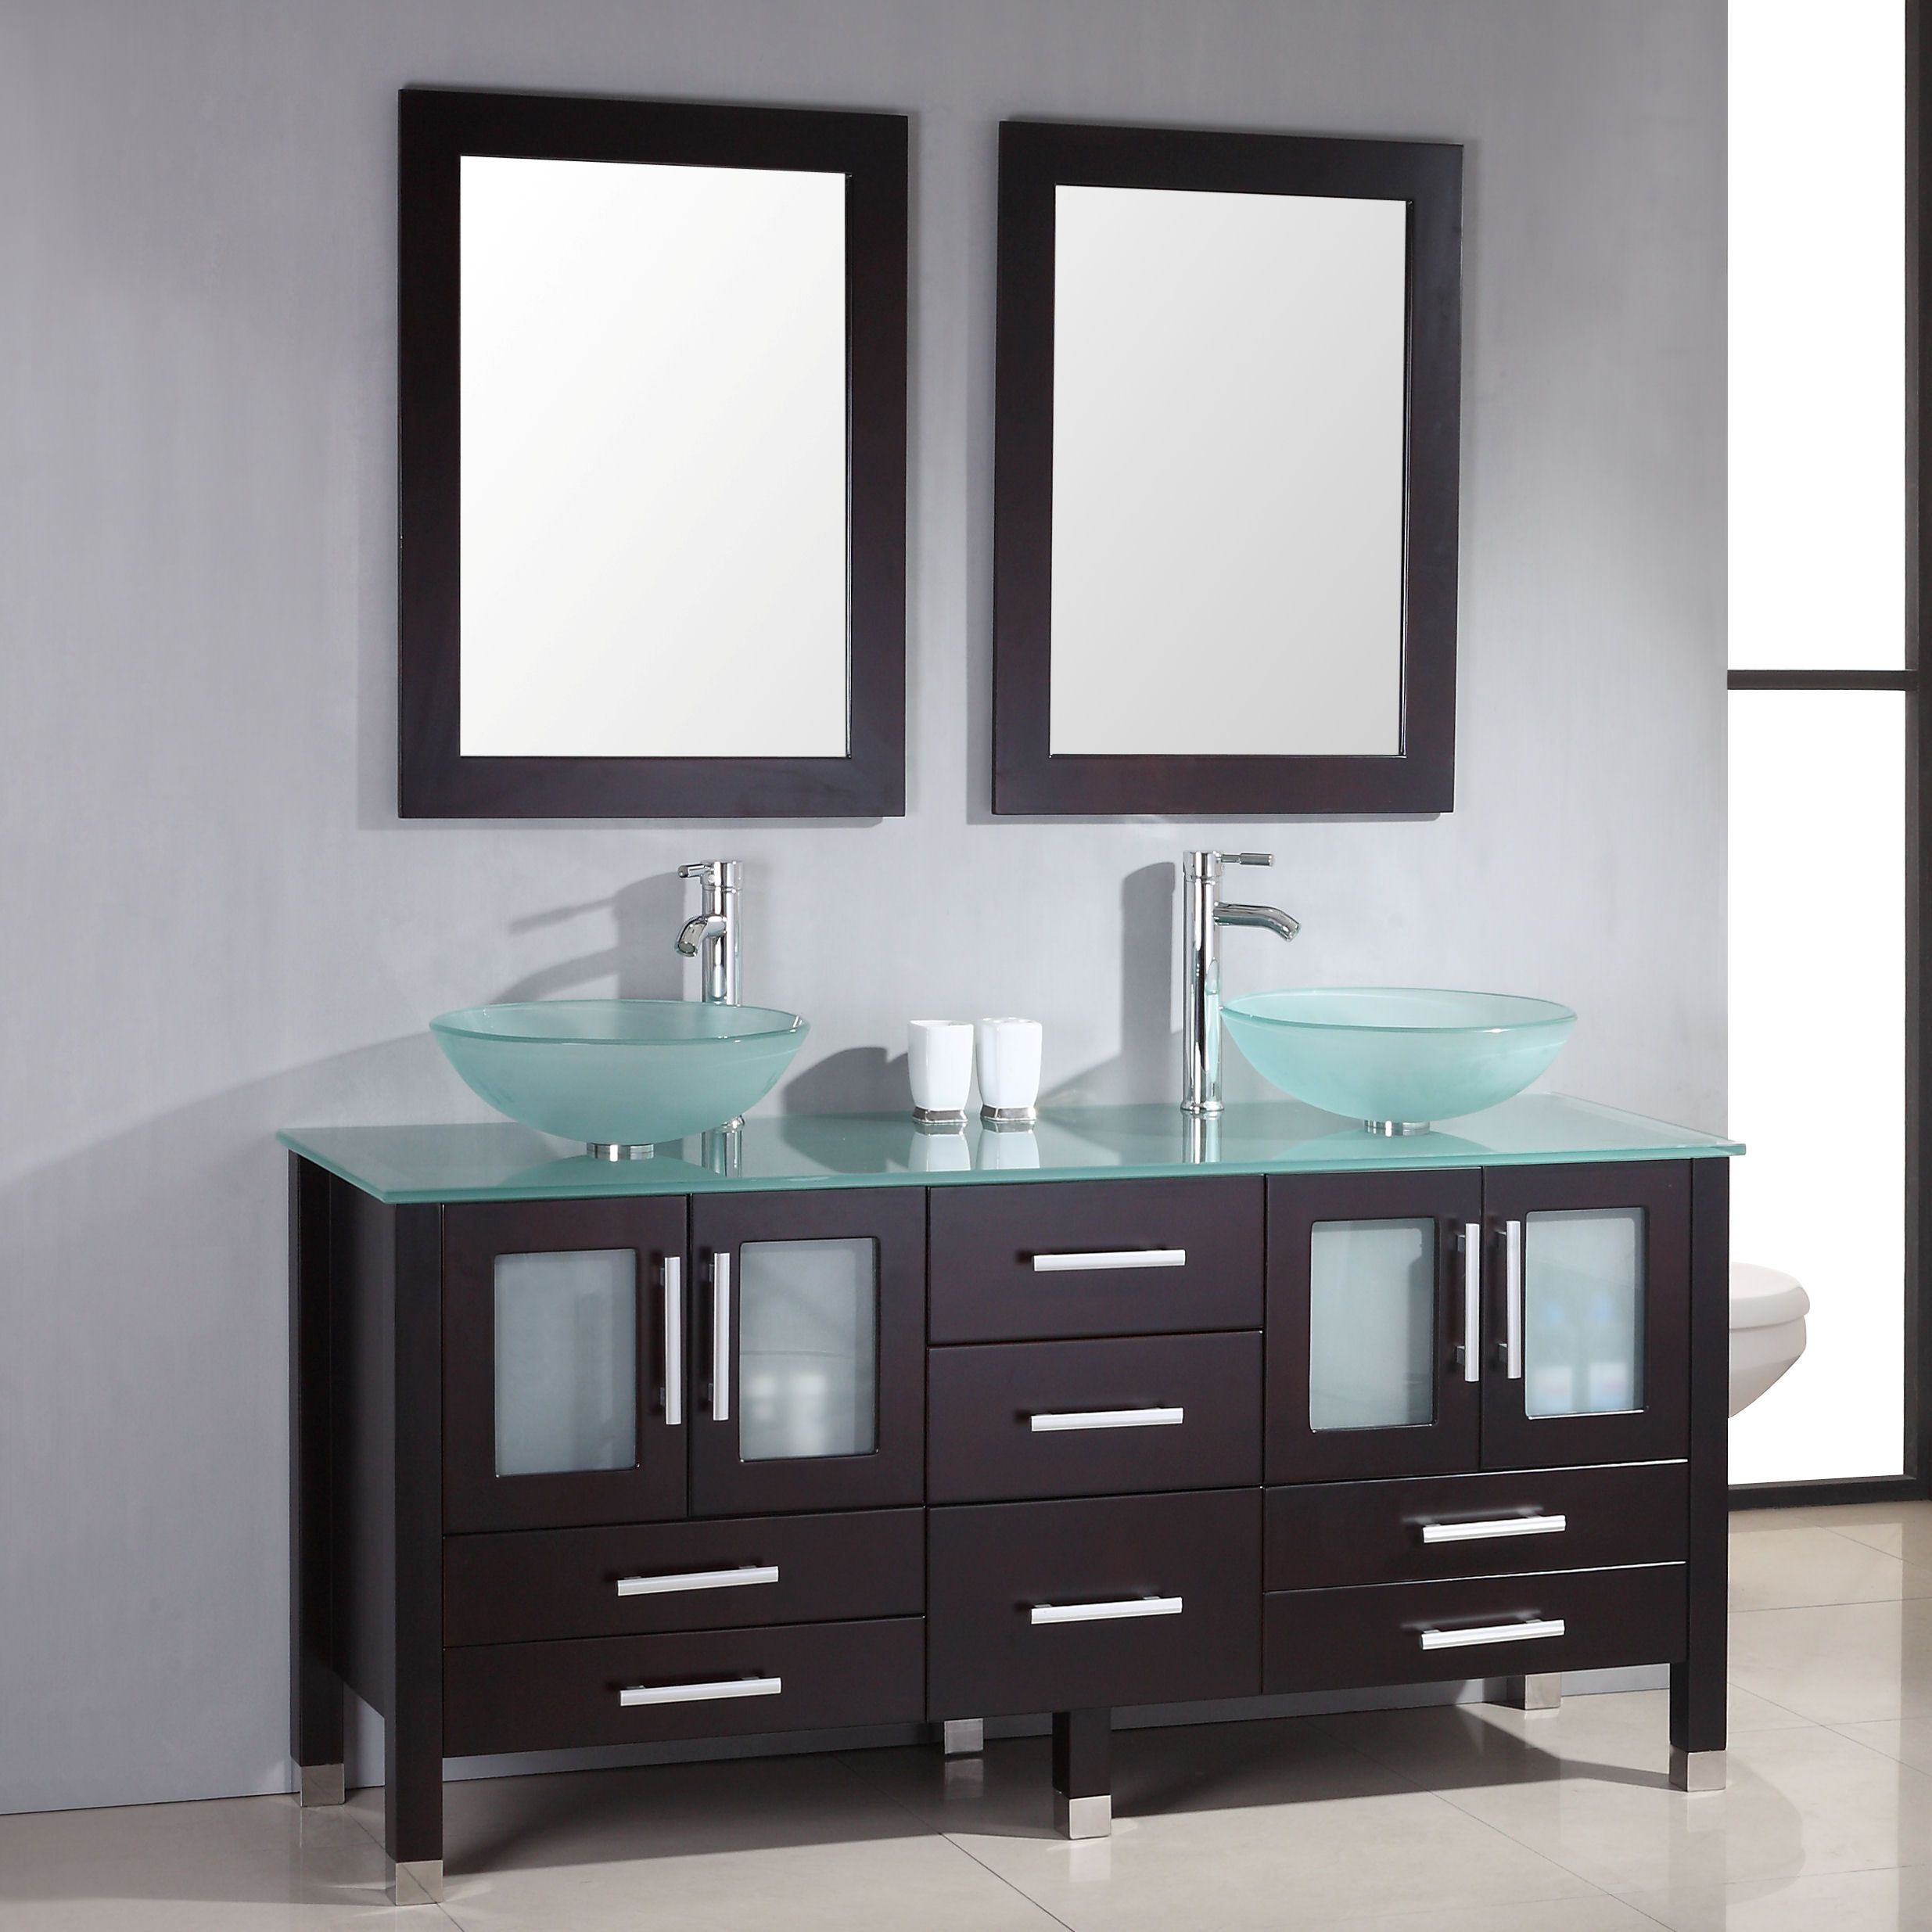 with aspiration bathroom studio home for bath vanity lynwood stainless house master amazing keep remodel dark can plan and exquisite vessel counters extraordinary sink sinks marbles white regarding bedroom vanities walnut steel handsome mcgee on